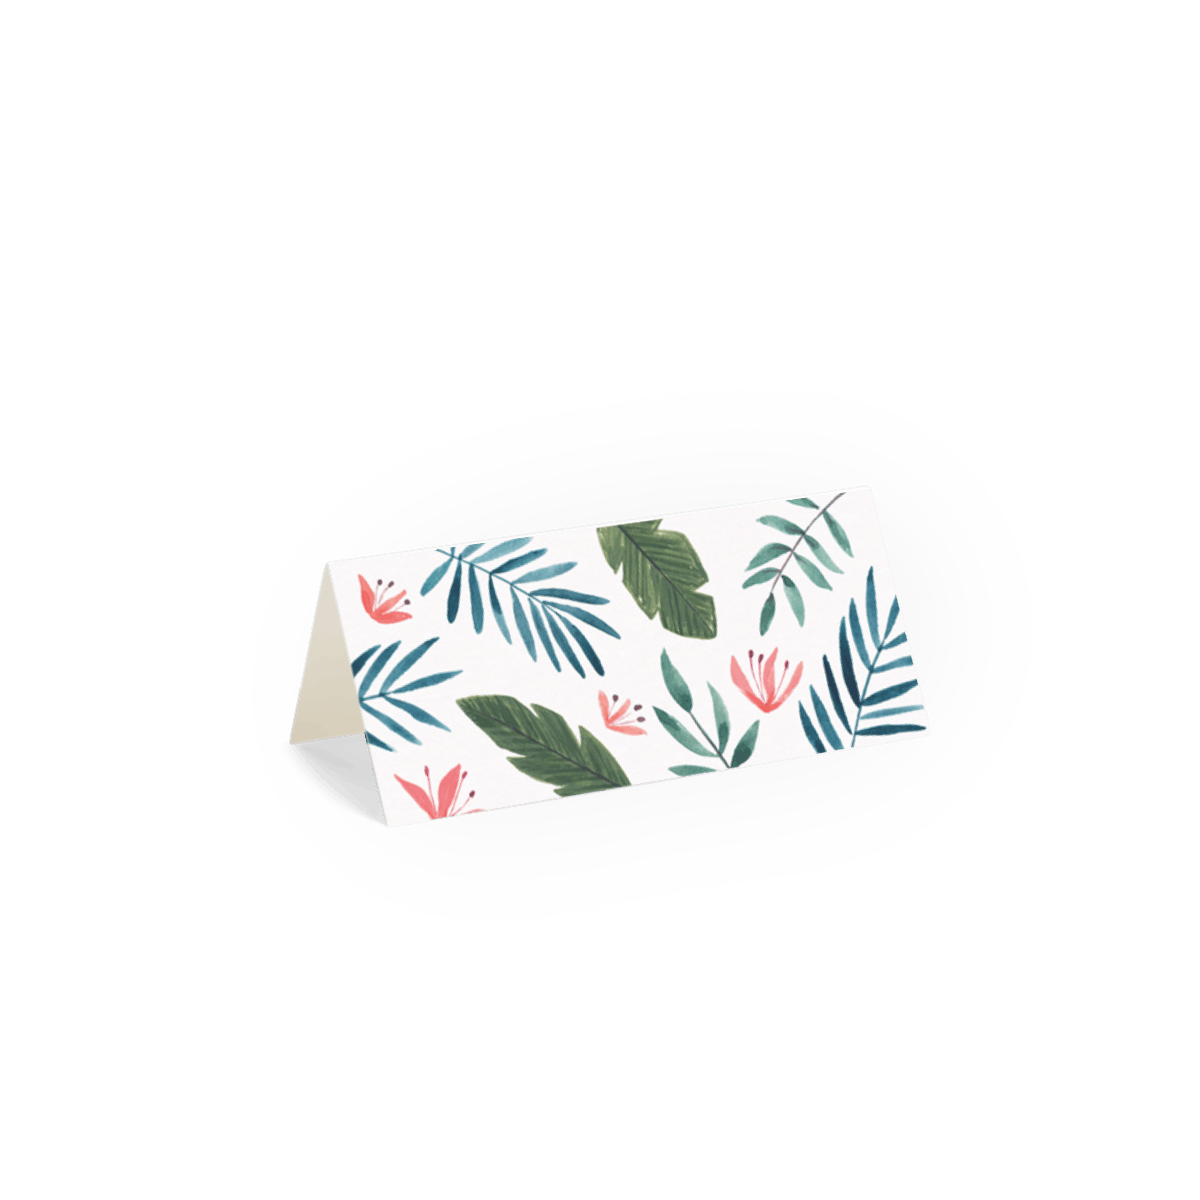 Https%3a%2f%2fwww.papier.com%2fproduct image%2f20975%2f15%2fparadise florals 5358 back 1490356217.png?ixlib=rb 1.1